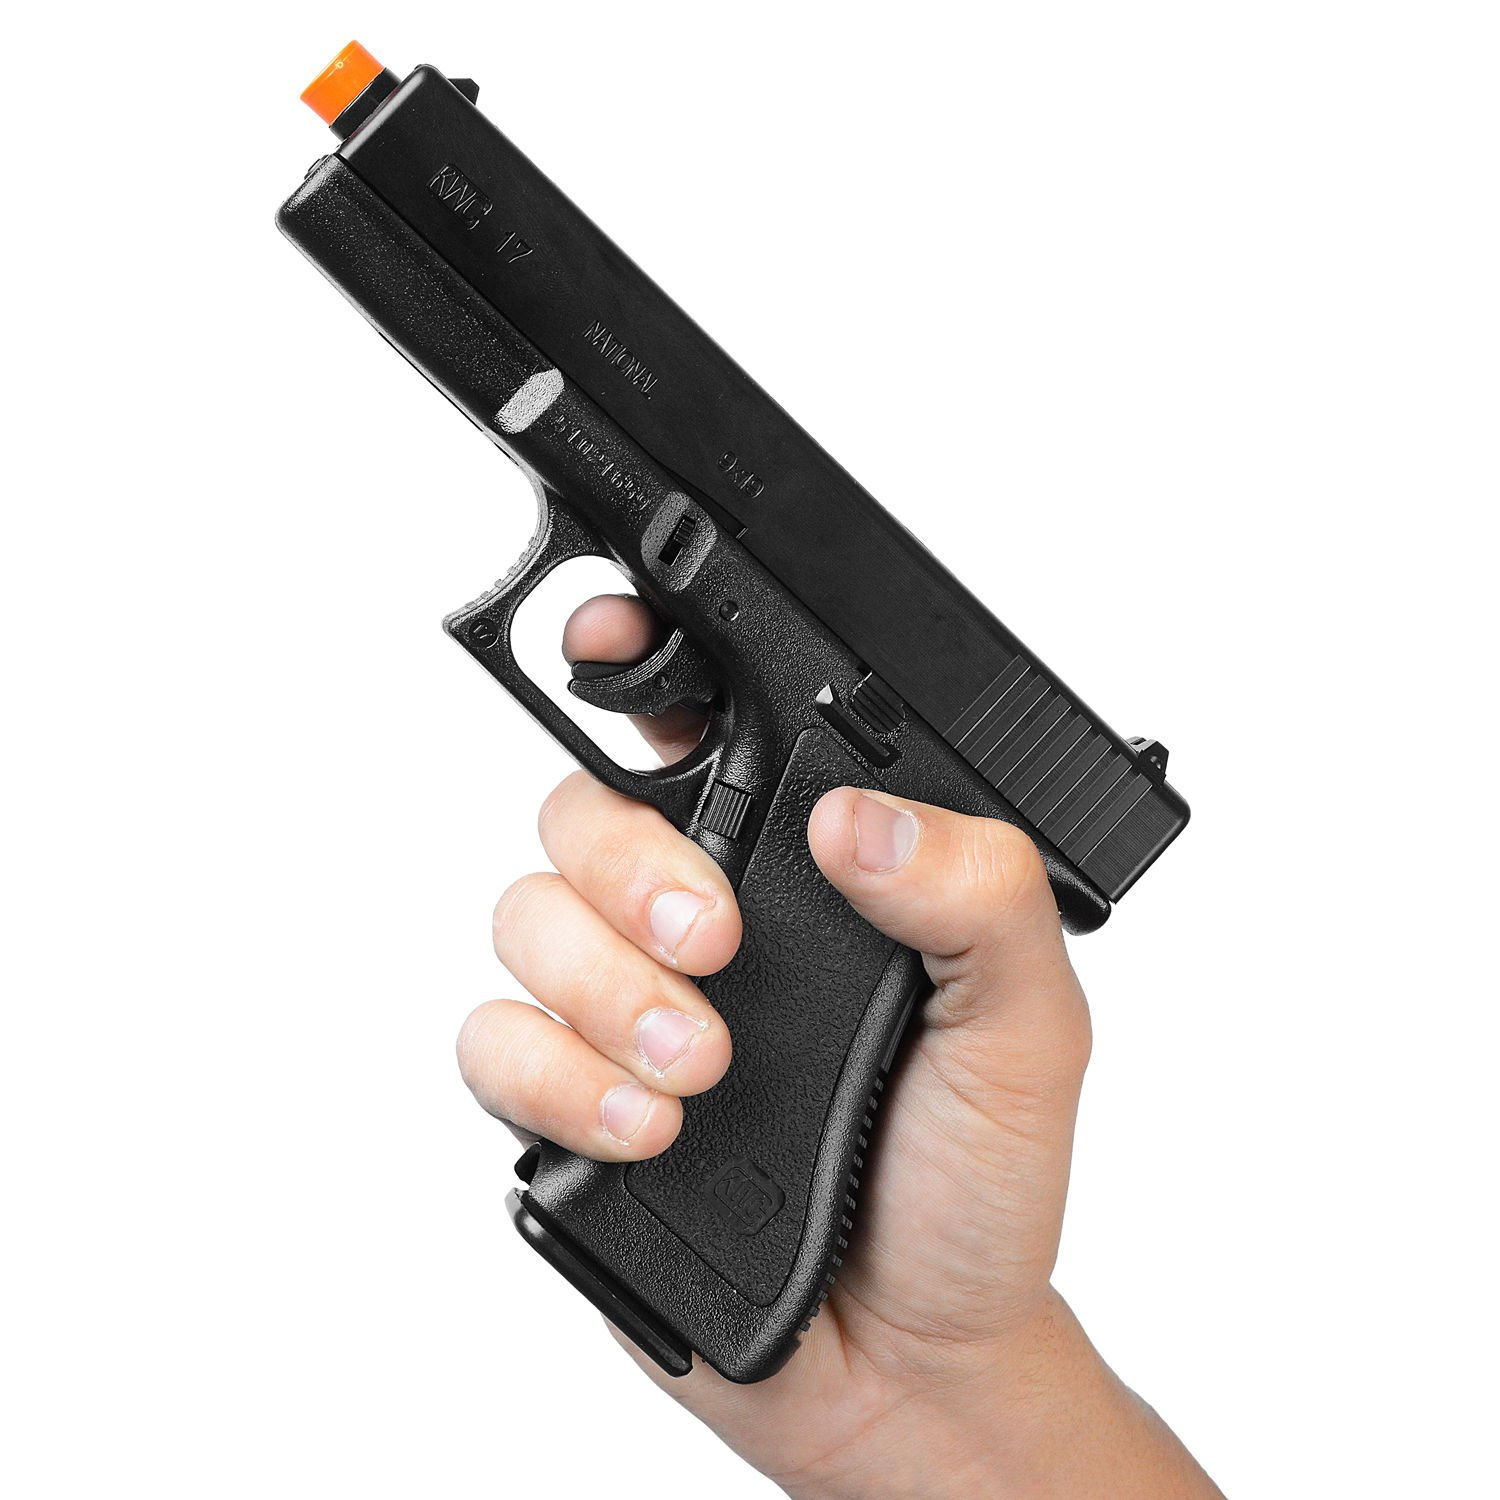 Pistola Airsoft 6Mm G7 Hp Spring Mola Actionx Kwc